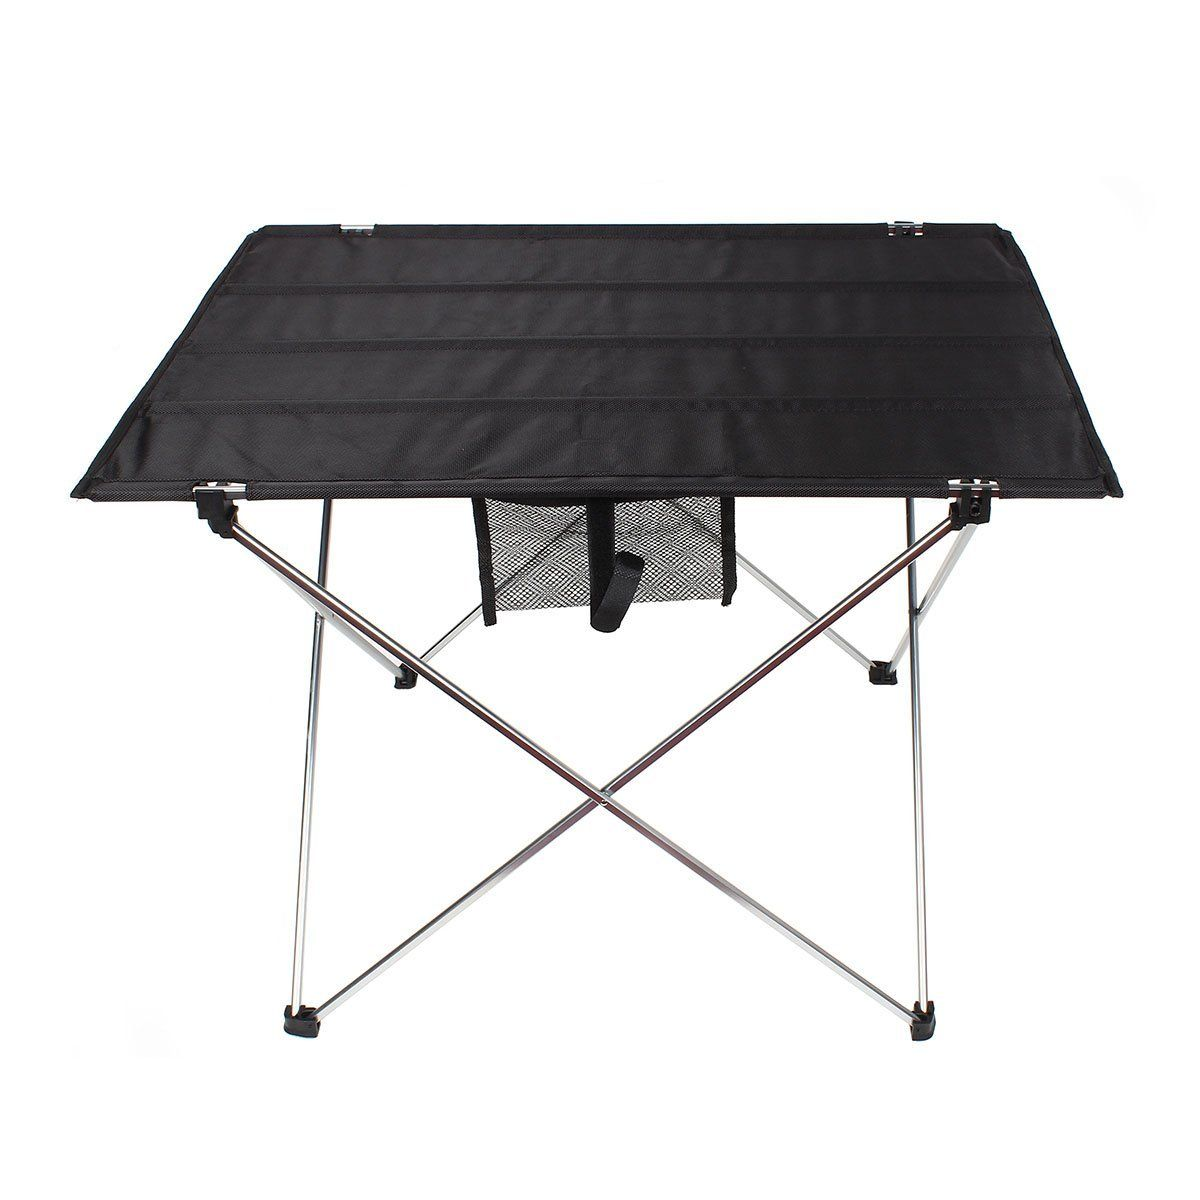 Outry lightweight outdoor camping folding table unfolded ul x